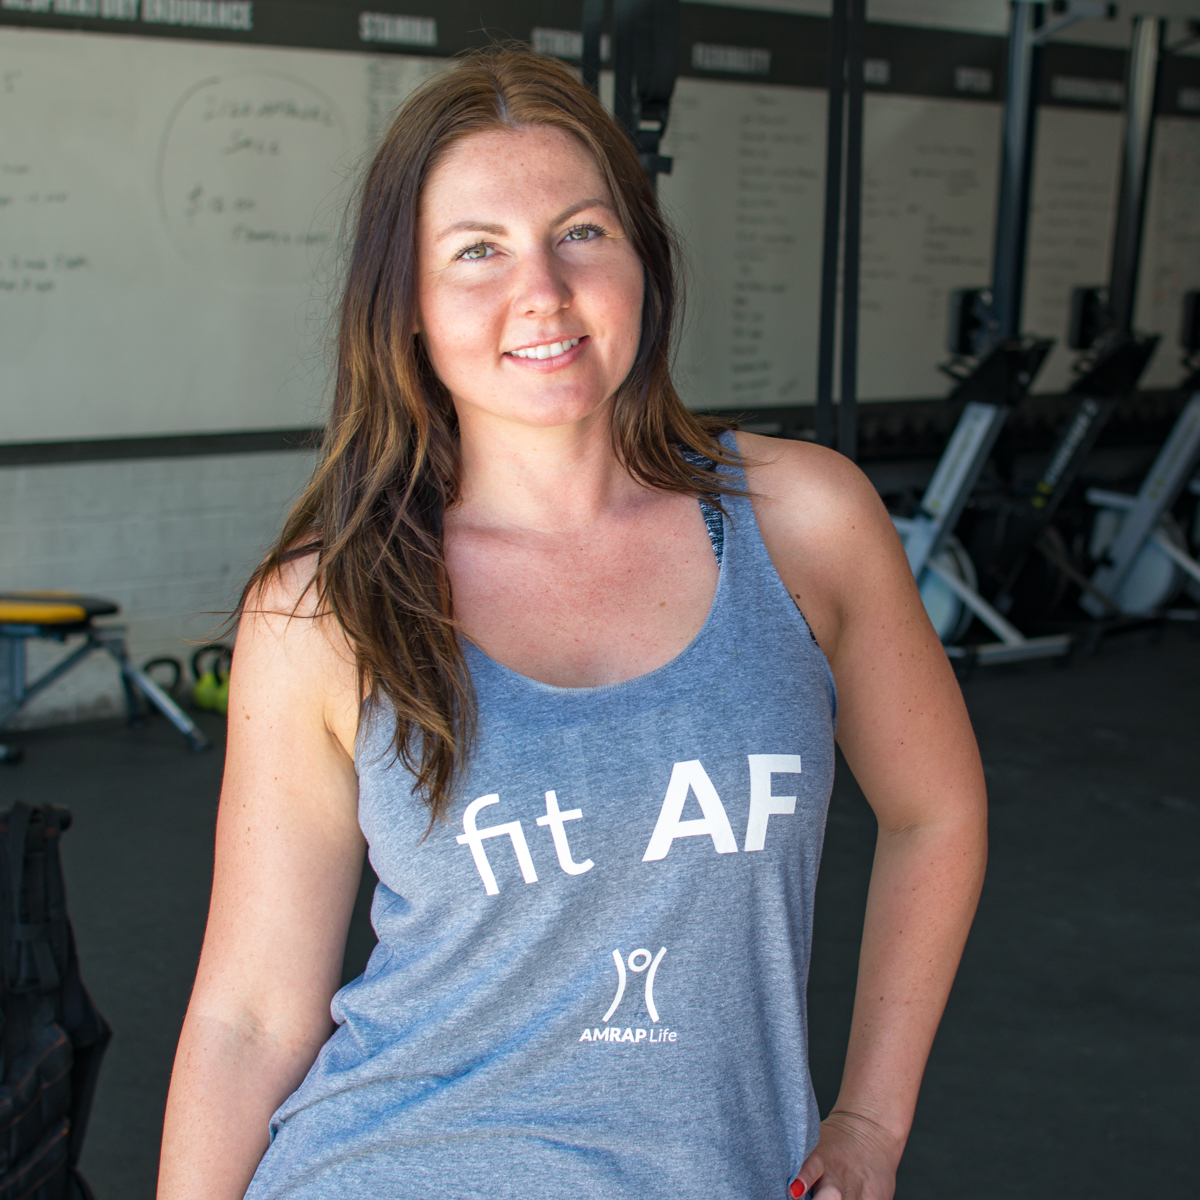 Fit AF Women's Tank Top